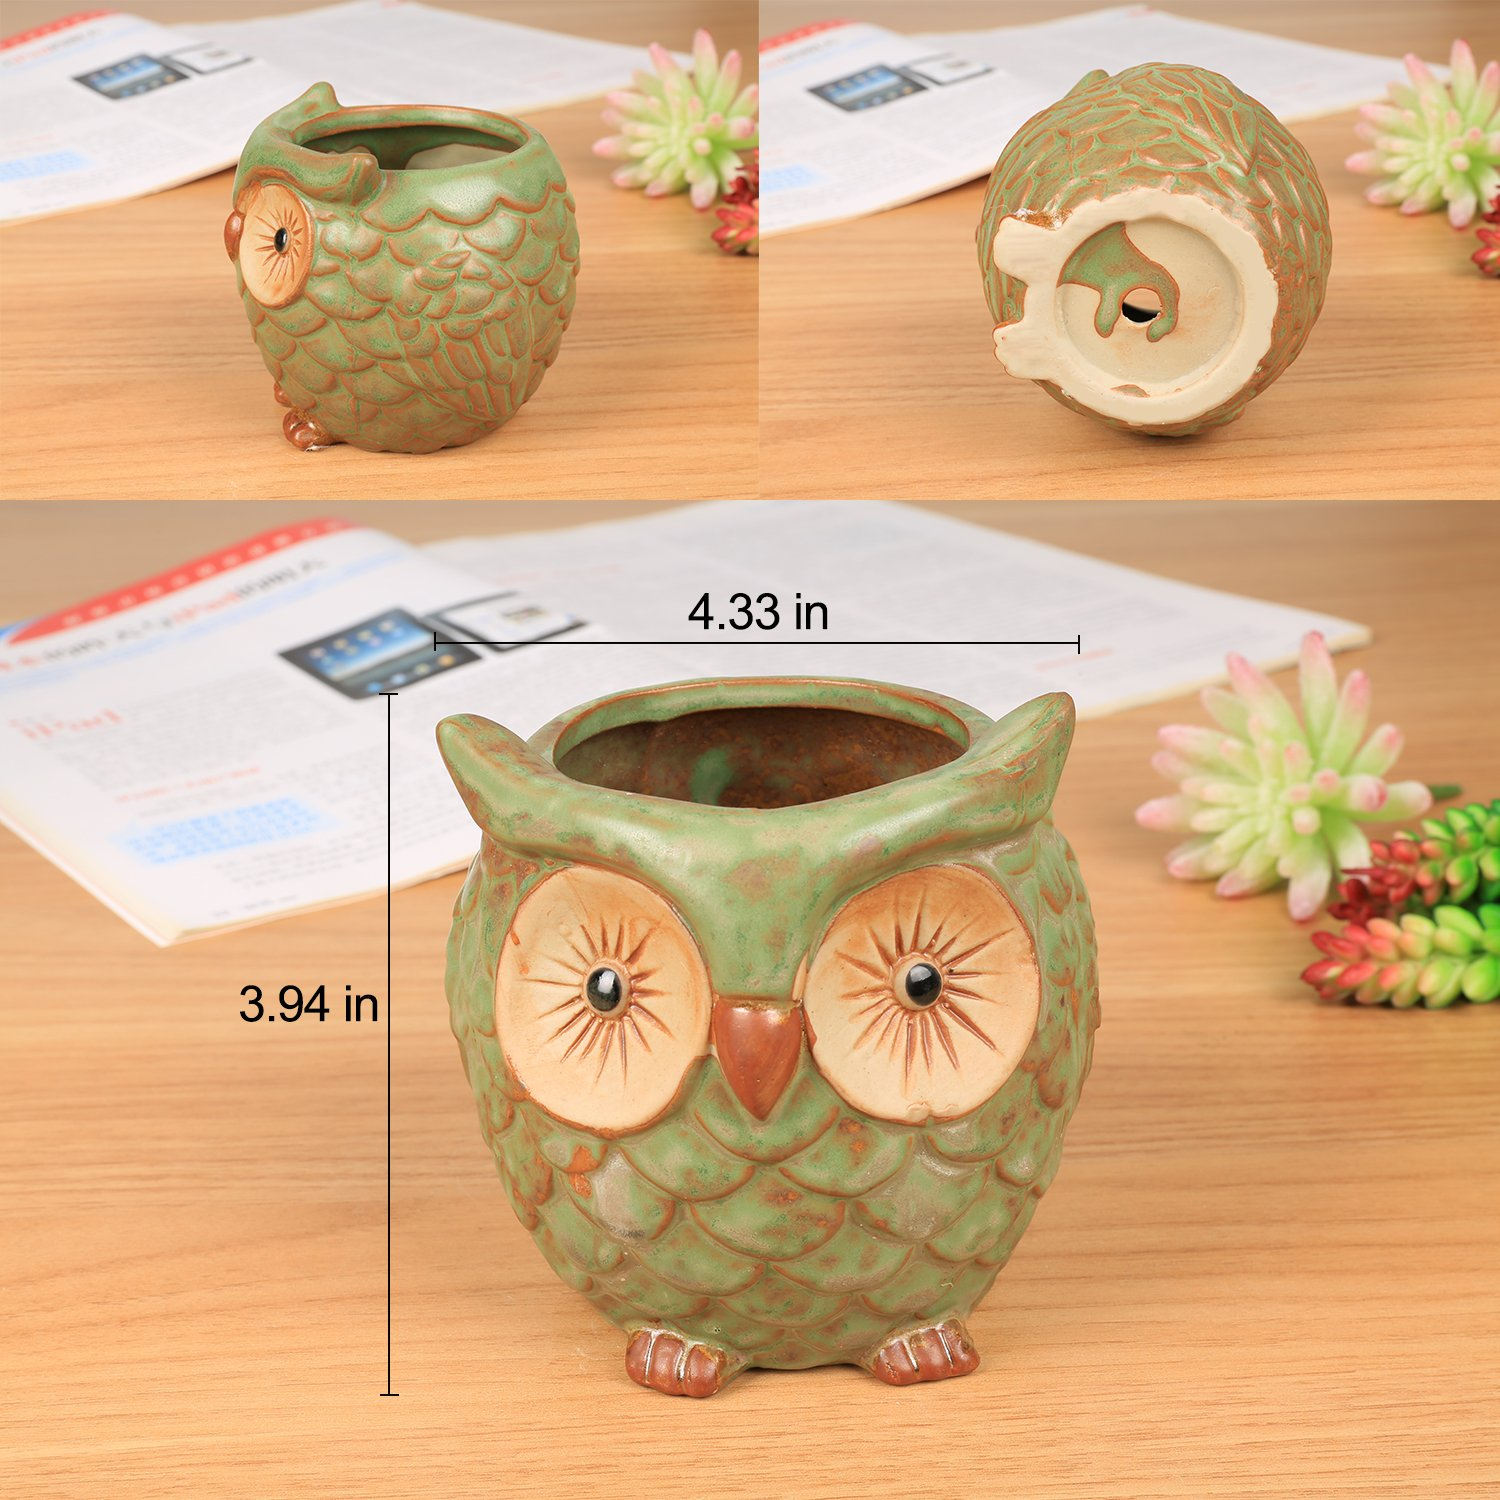 ROSE CREATE 3pcs 3in / 4in / 4.5in Owl Flower Pots by ROSE CREATE (Image #2)